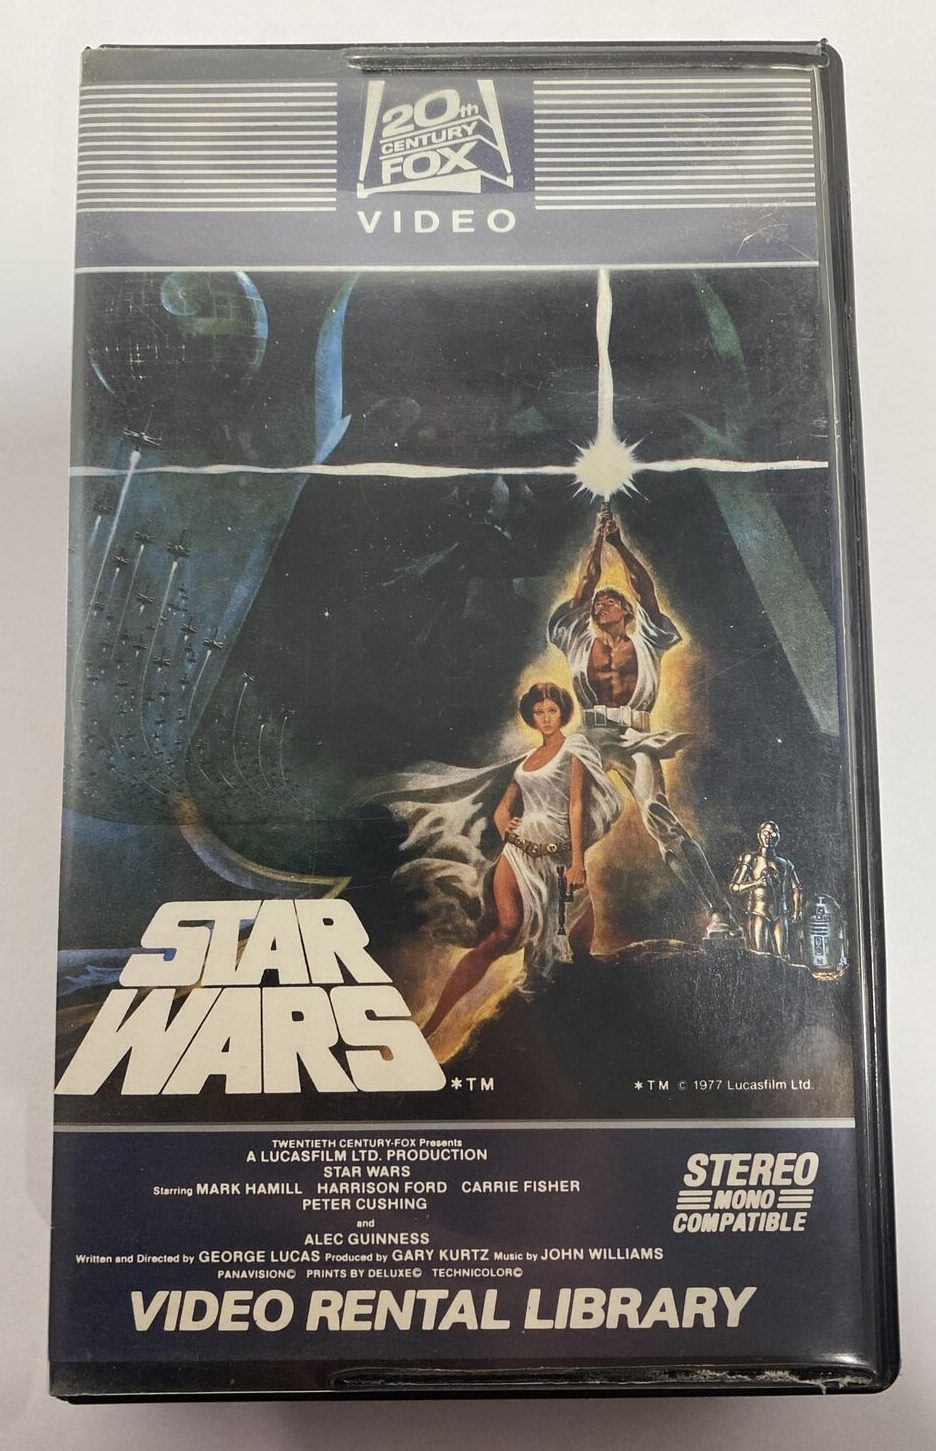 star wars vhs tapes list rare halloween disney black diamond let it be the beatles wcw bash at the beach barney waiting for santa